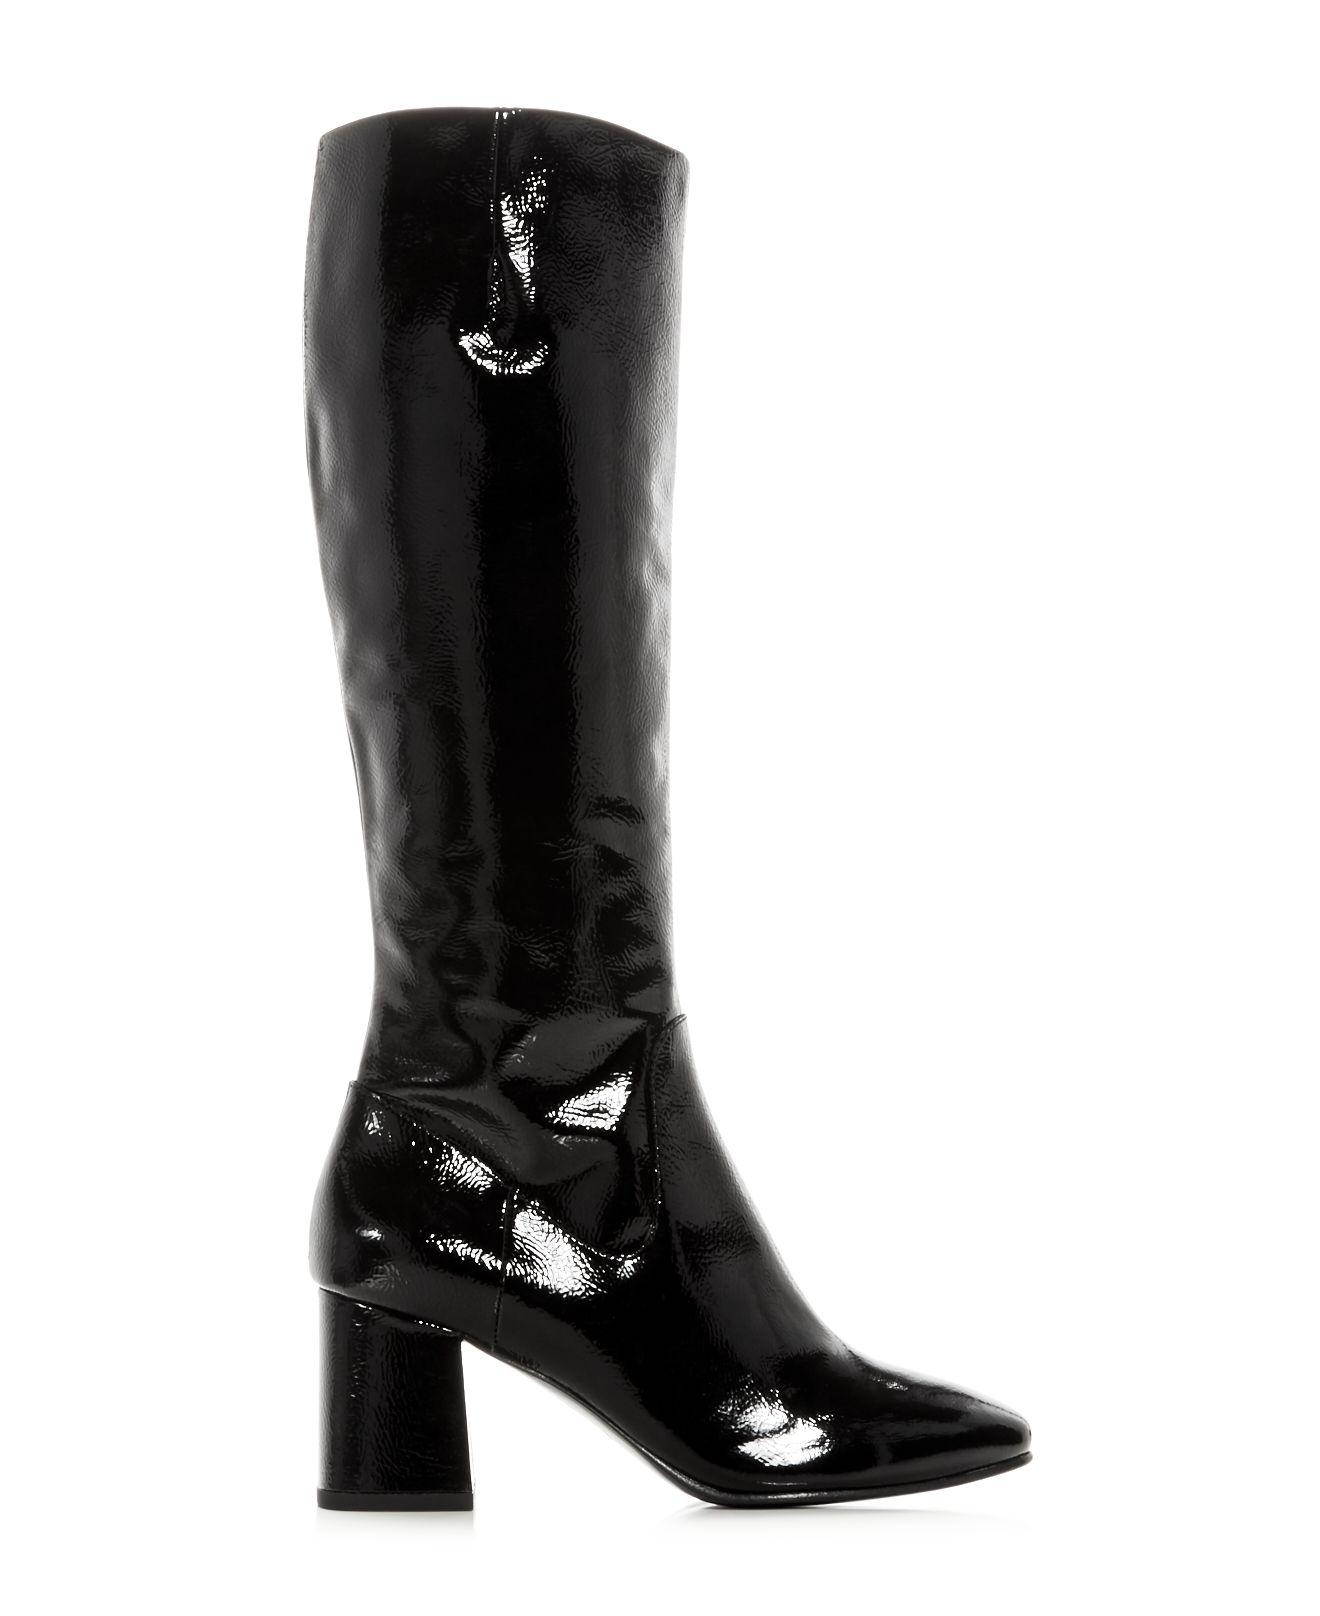 Sale Manchester Fast Express Ash Women's Hley Patent Leather Block Heel Tall Boots r4xcEDCsXP